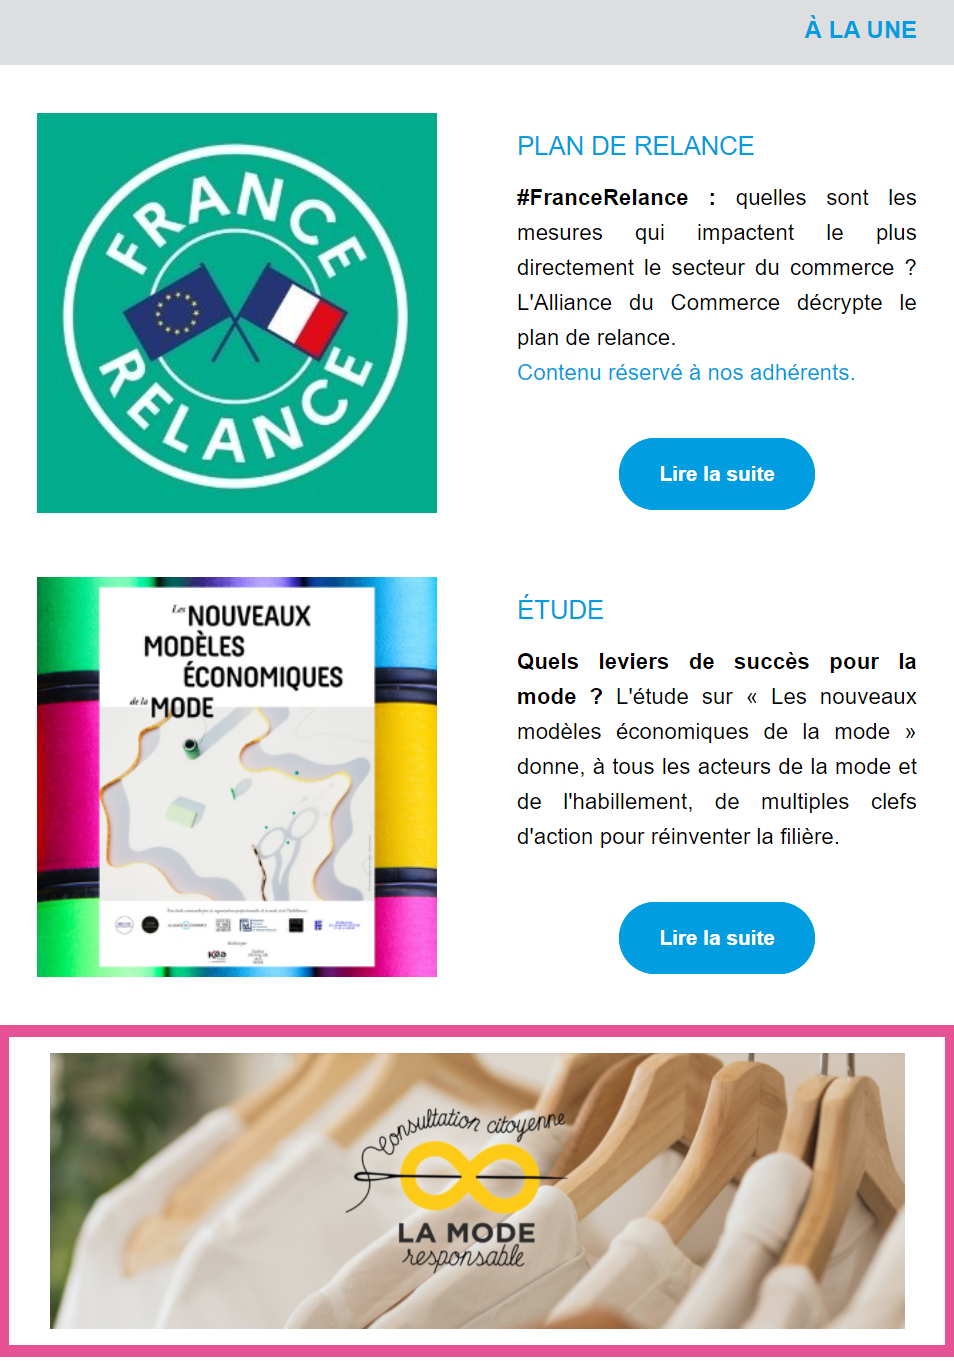 Newsletter Alliance du Commerce : exemple